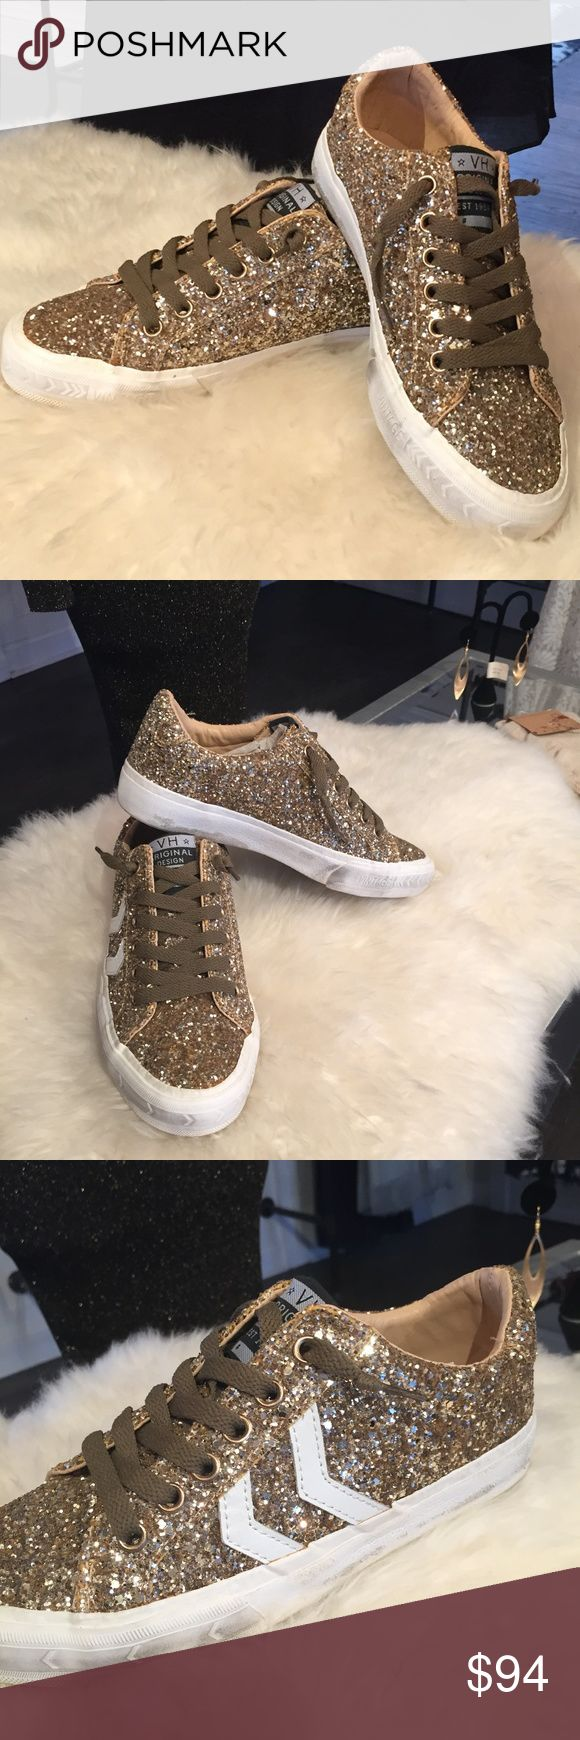 Vintage Havana Gold Sparkle Sneakers Brand New Gold Sparkle Extra Laces Included Vintage Havana Shoes Sneakers